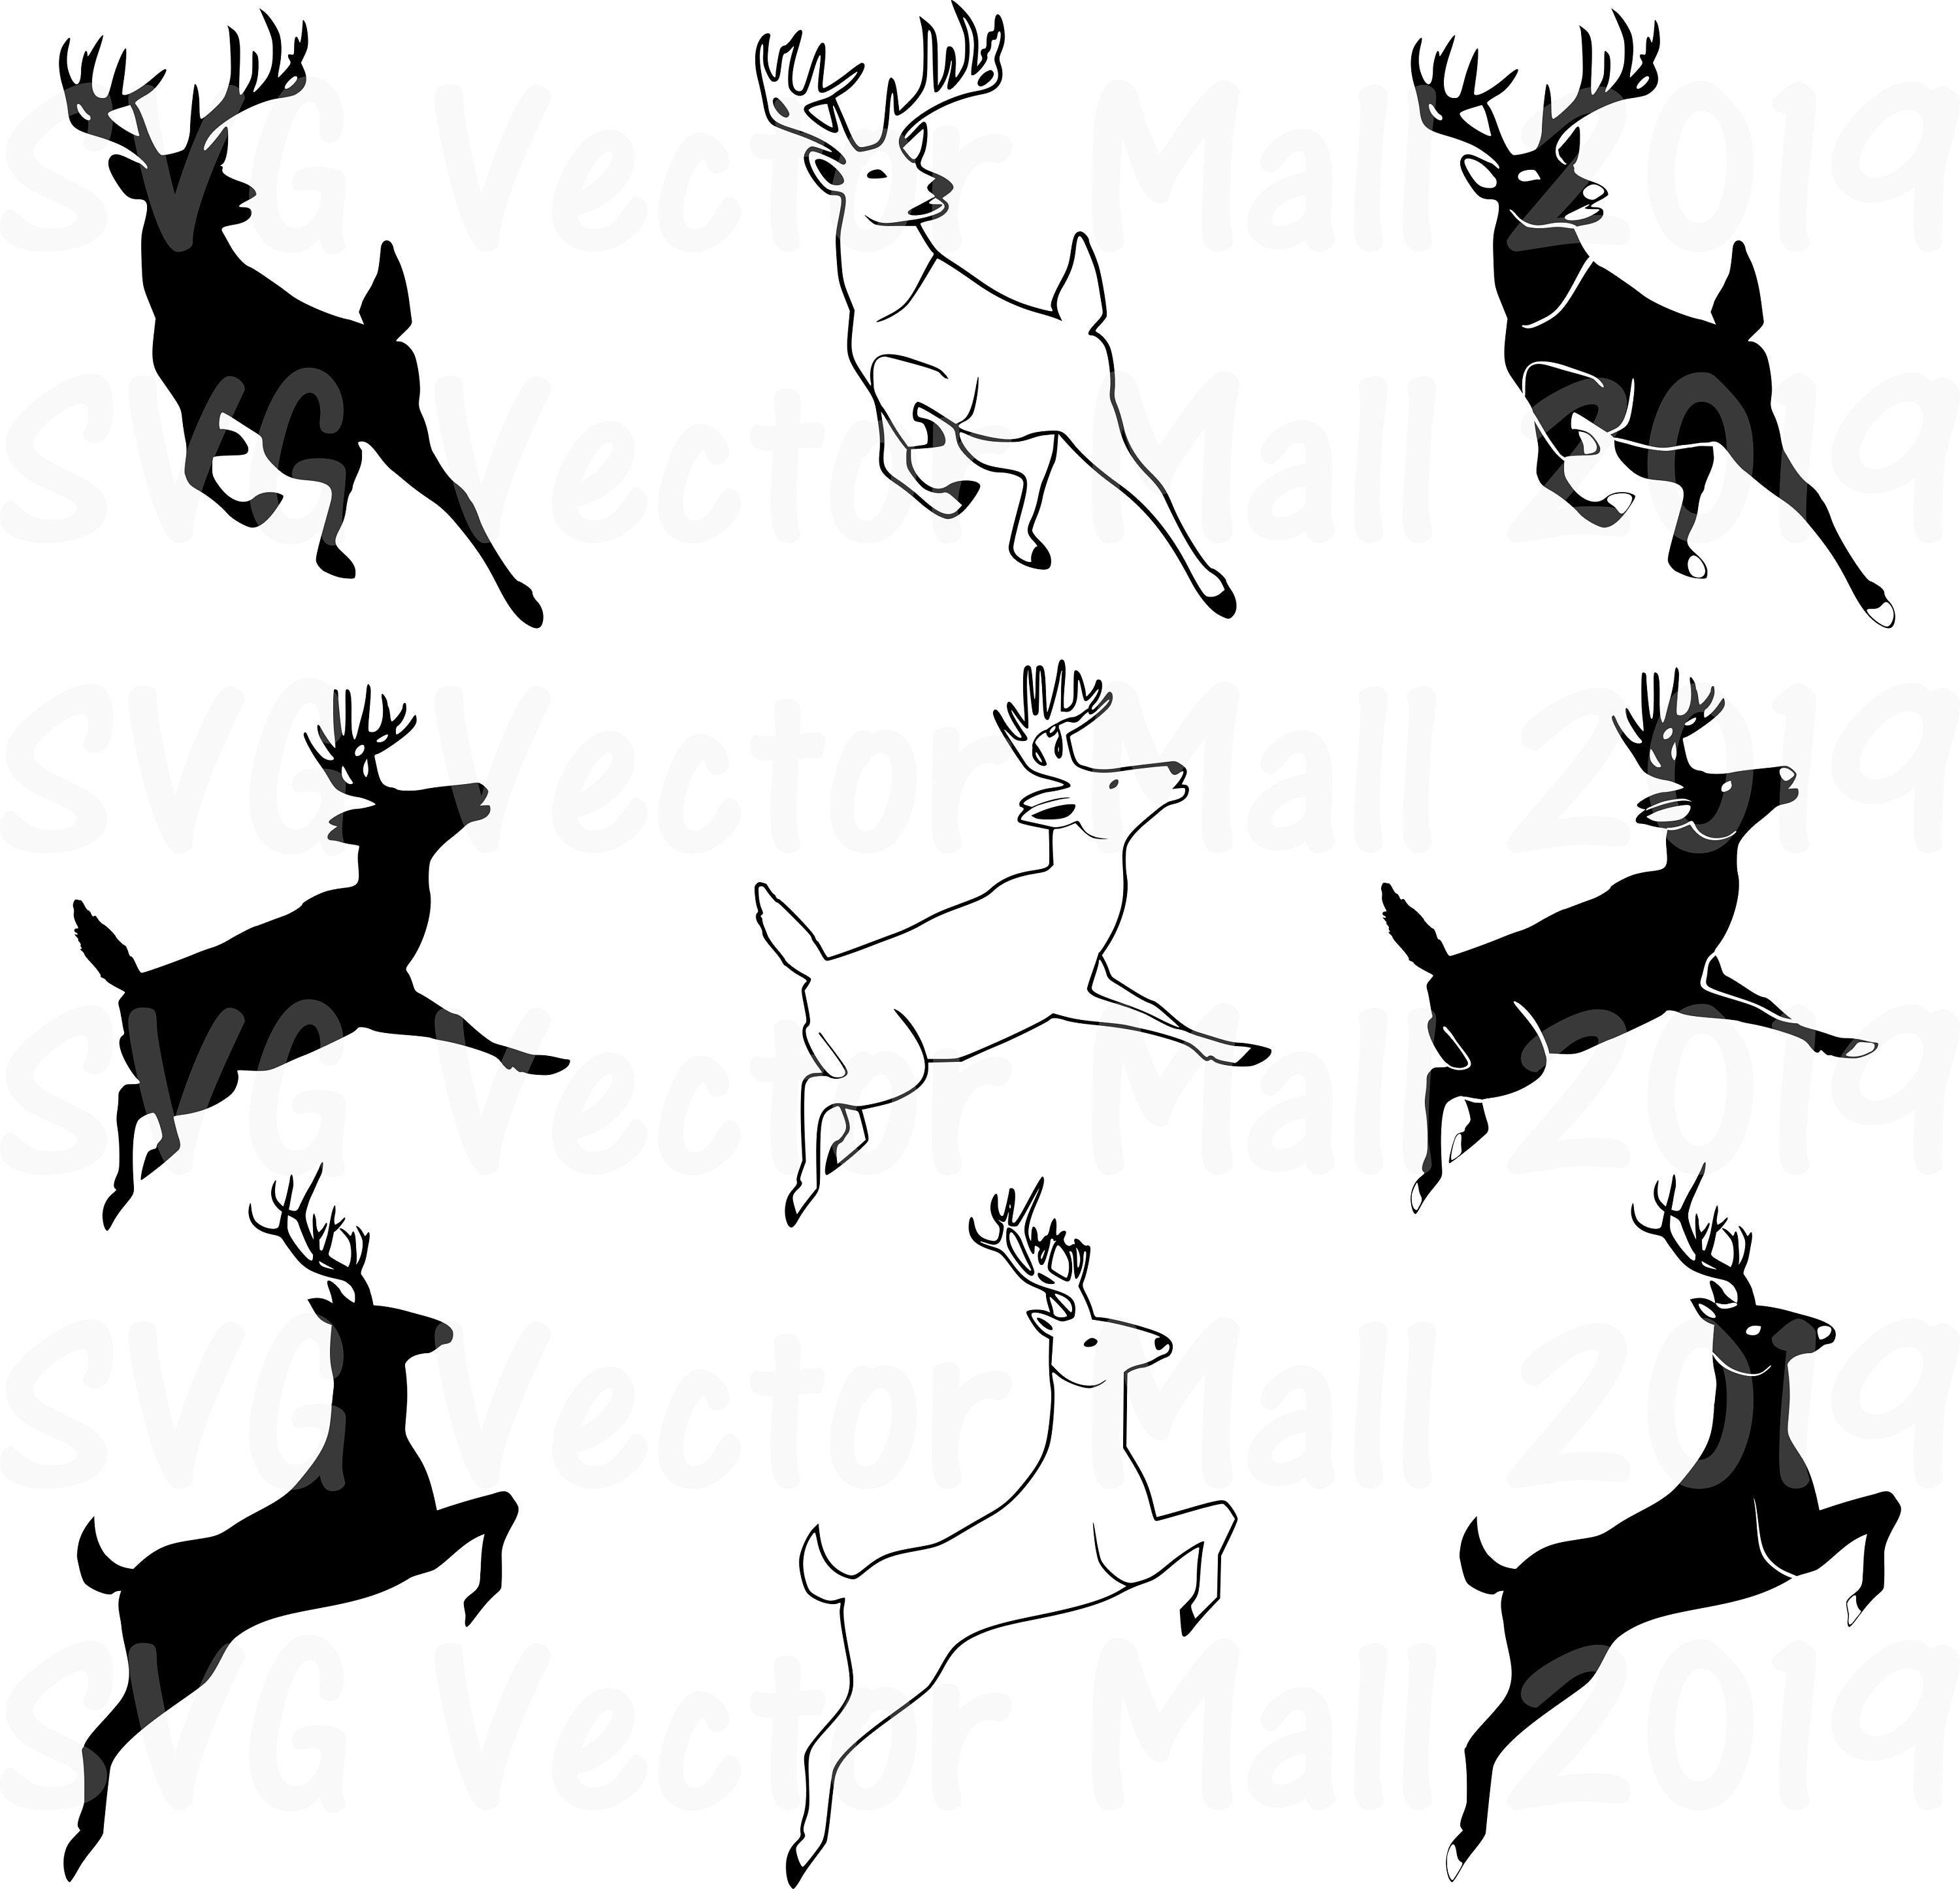 Newly Updated For My Etsy Shop Deer Jumping Leaping Deer Deer Svg Deer Clipart Stag Hunting Cricut Si Deer Jumping Deer Illustration Hunting Drawings